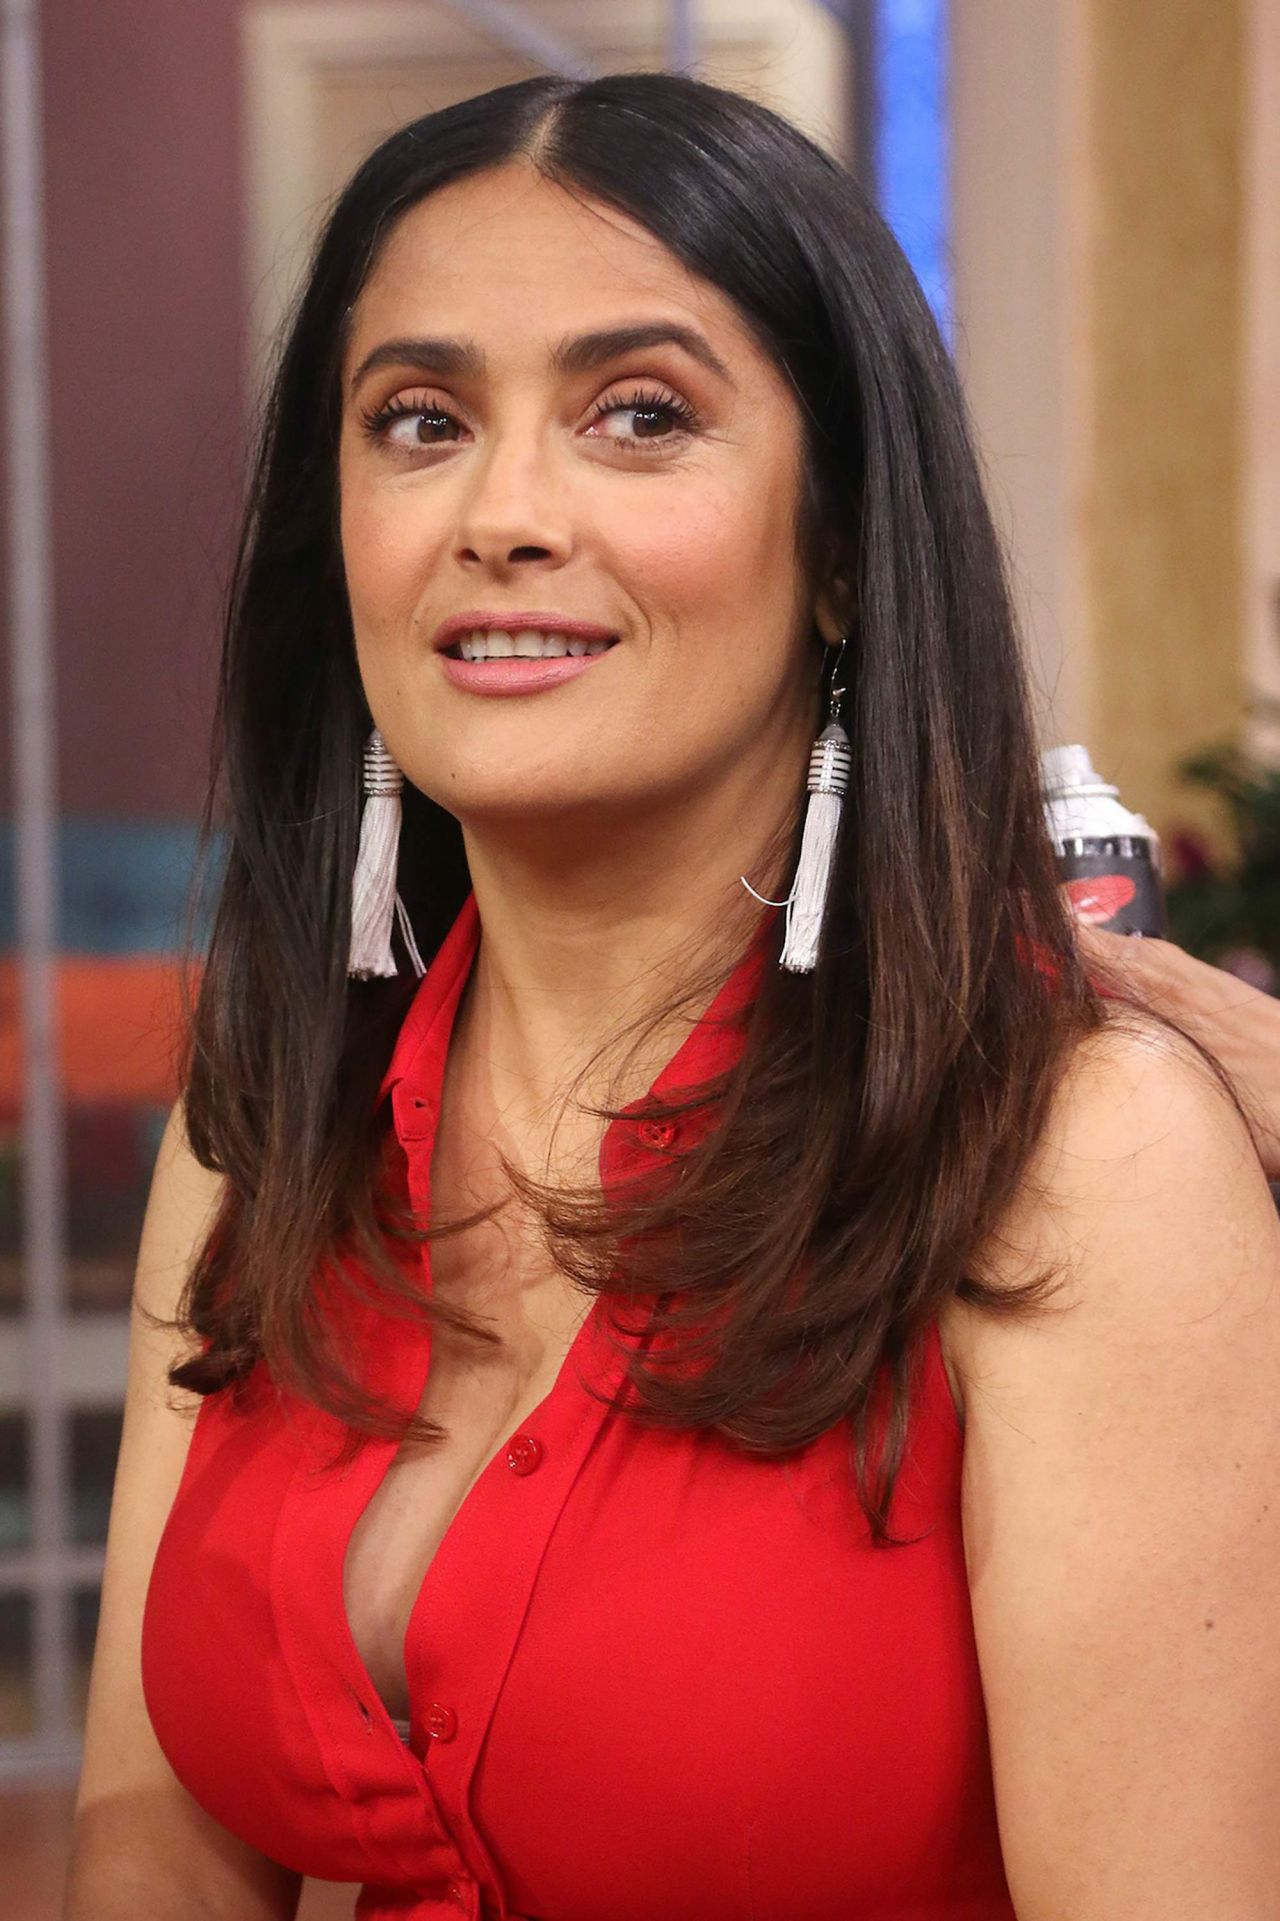 Salma Hayek photo #778209